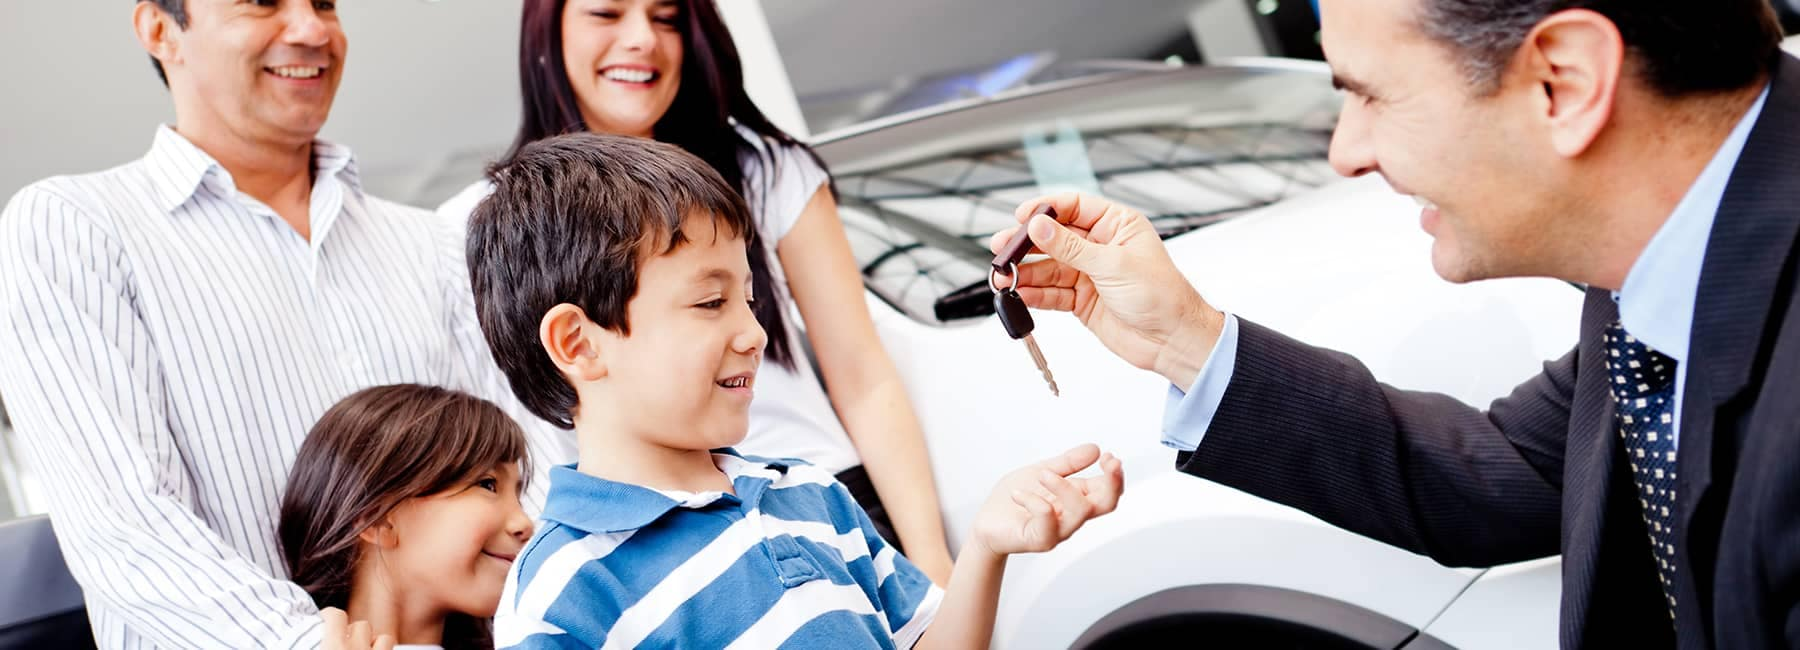 Child receiving keys to vehicle